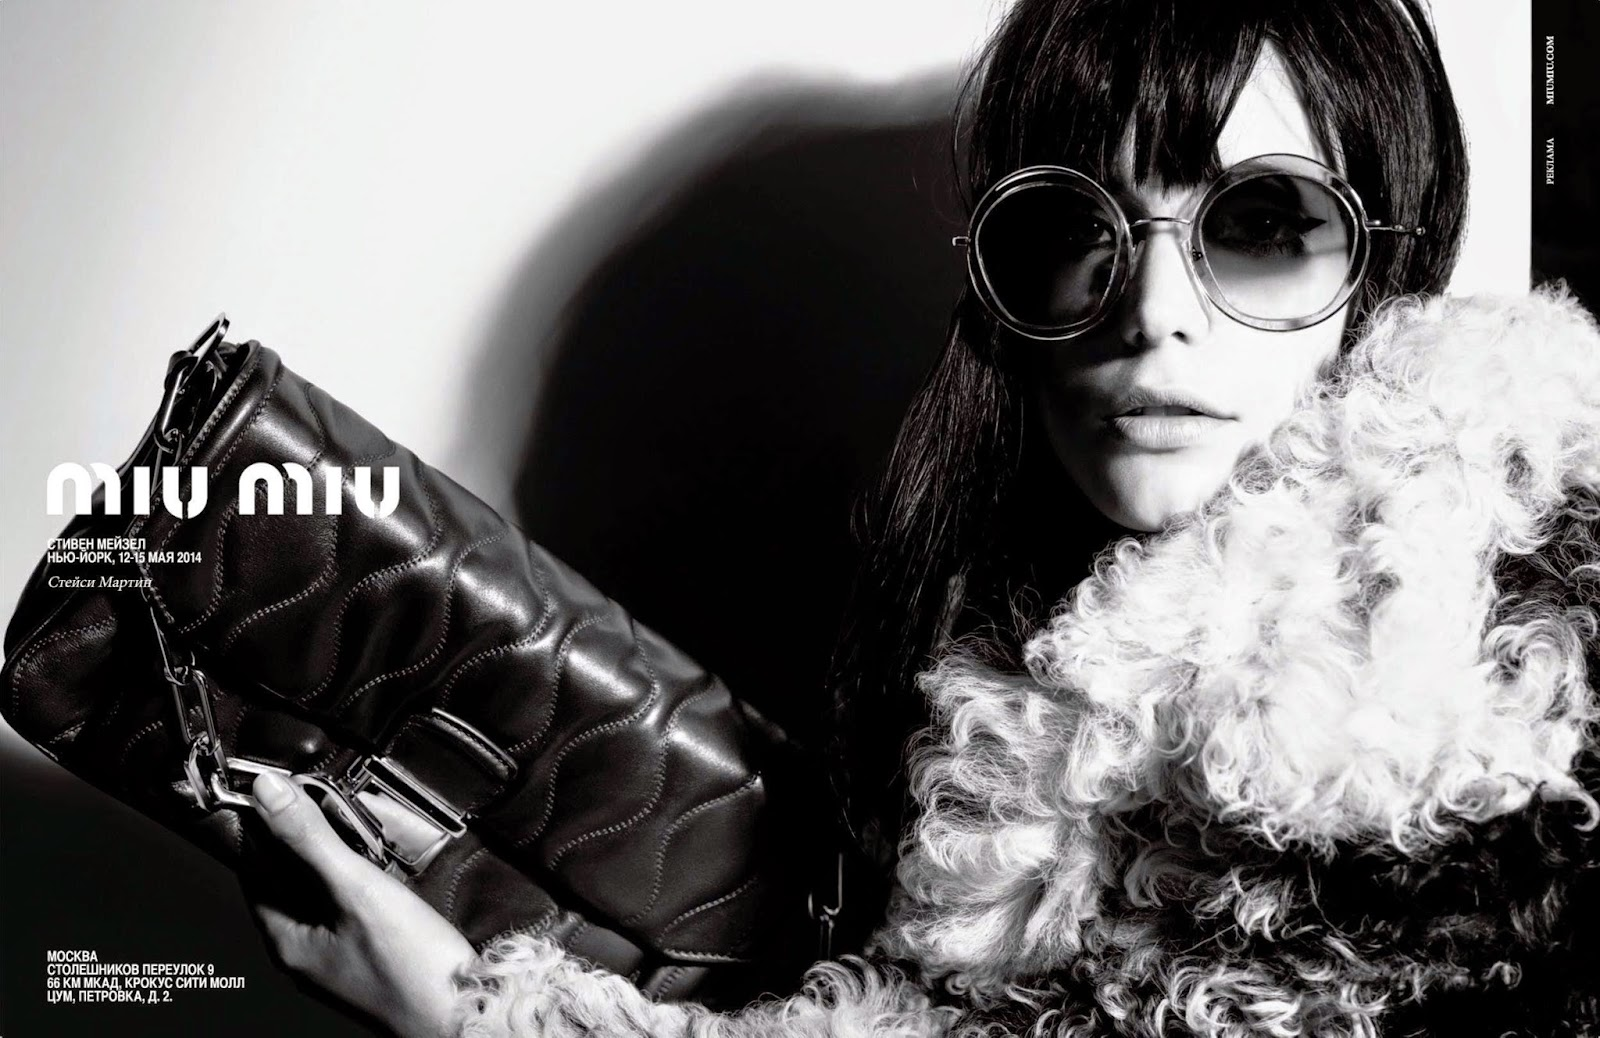 miu-miu-eyewear-fall-2014-ad-campaign-stacy-Martin-by-Steven-Meisel-the-impression3